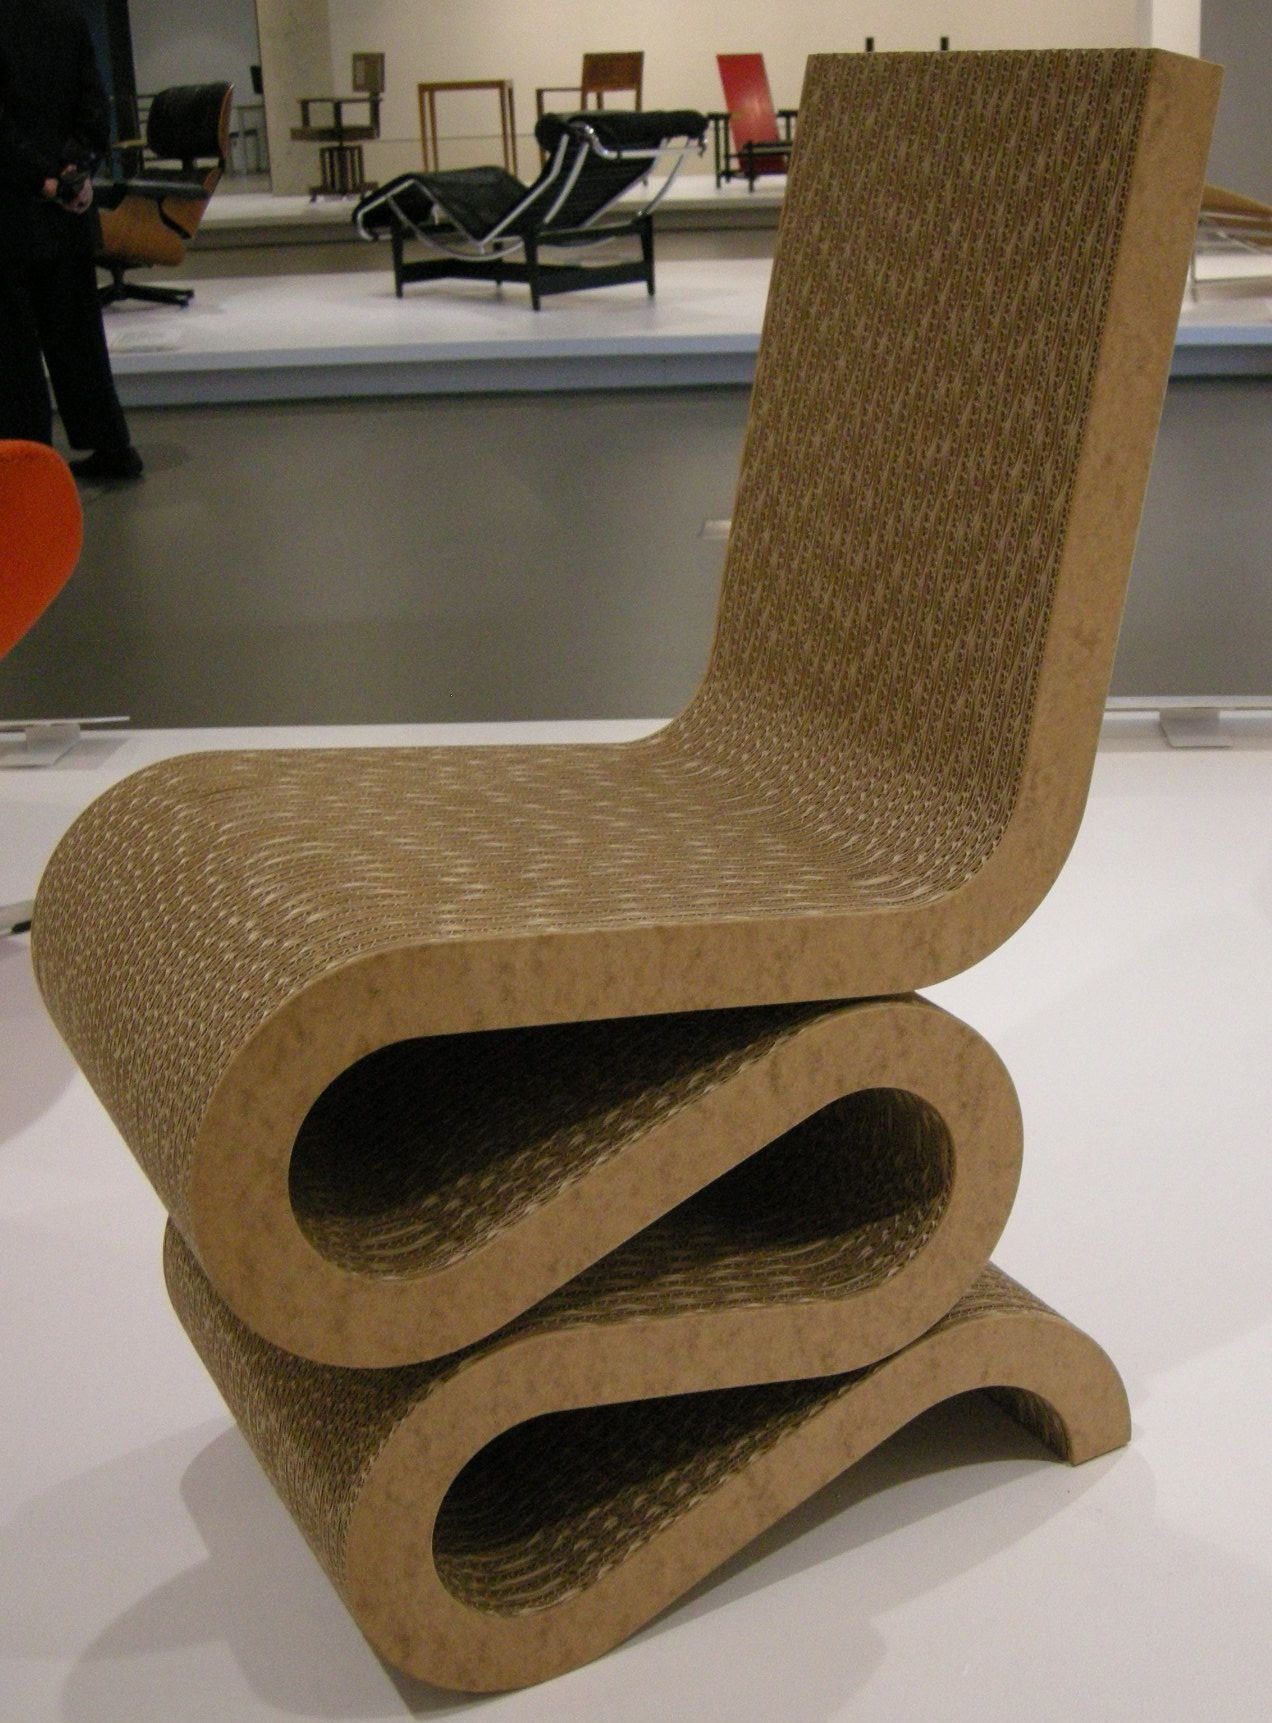 Corrugated cardboard furniture - Frank Gehry Wiggle Chair 1972 The Ultimate Cardboard Chair Potenital For Show Sale Or Workshop With Graduates From City Of Glasgow College Hnc D